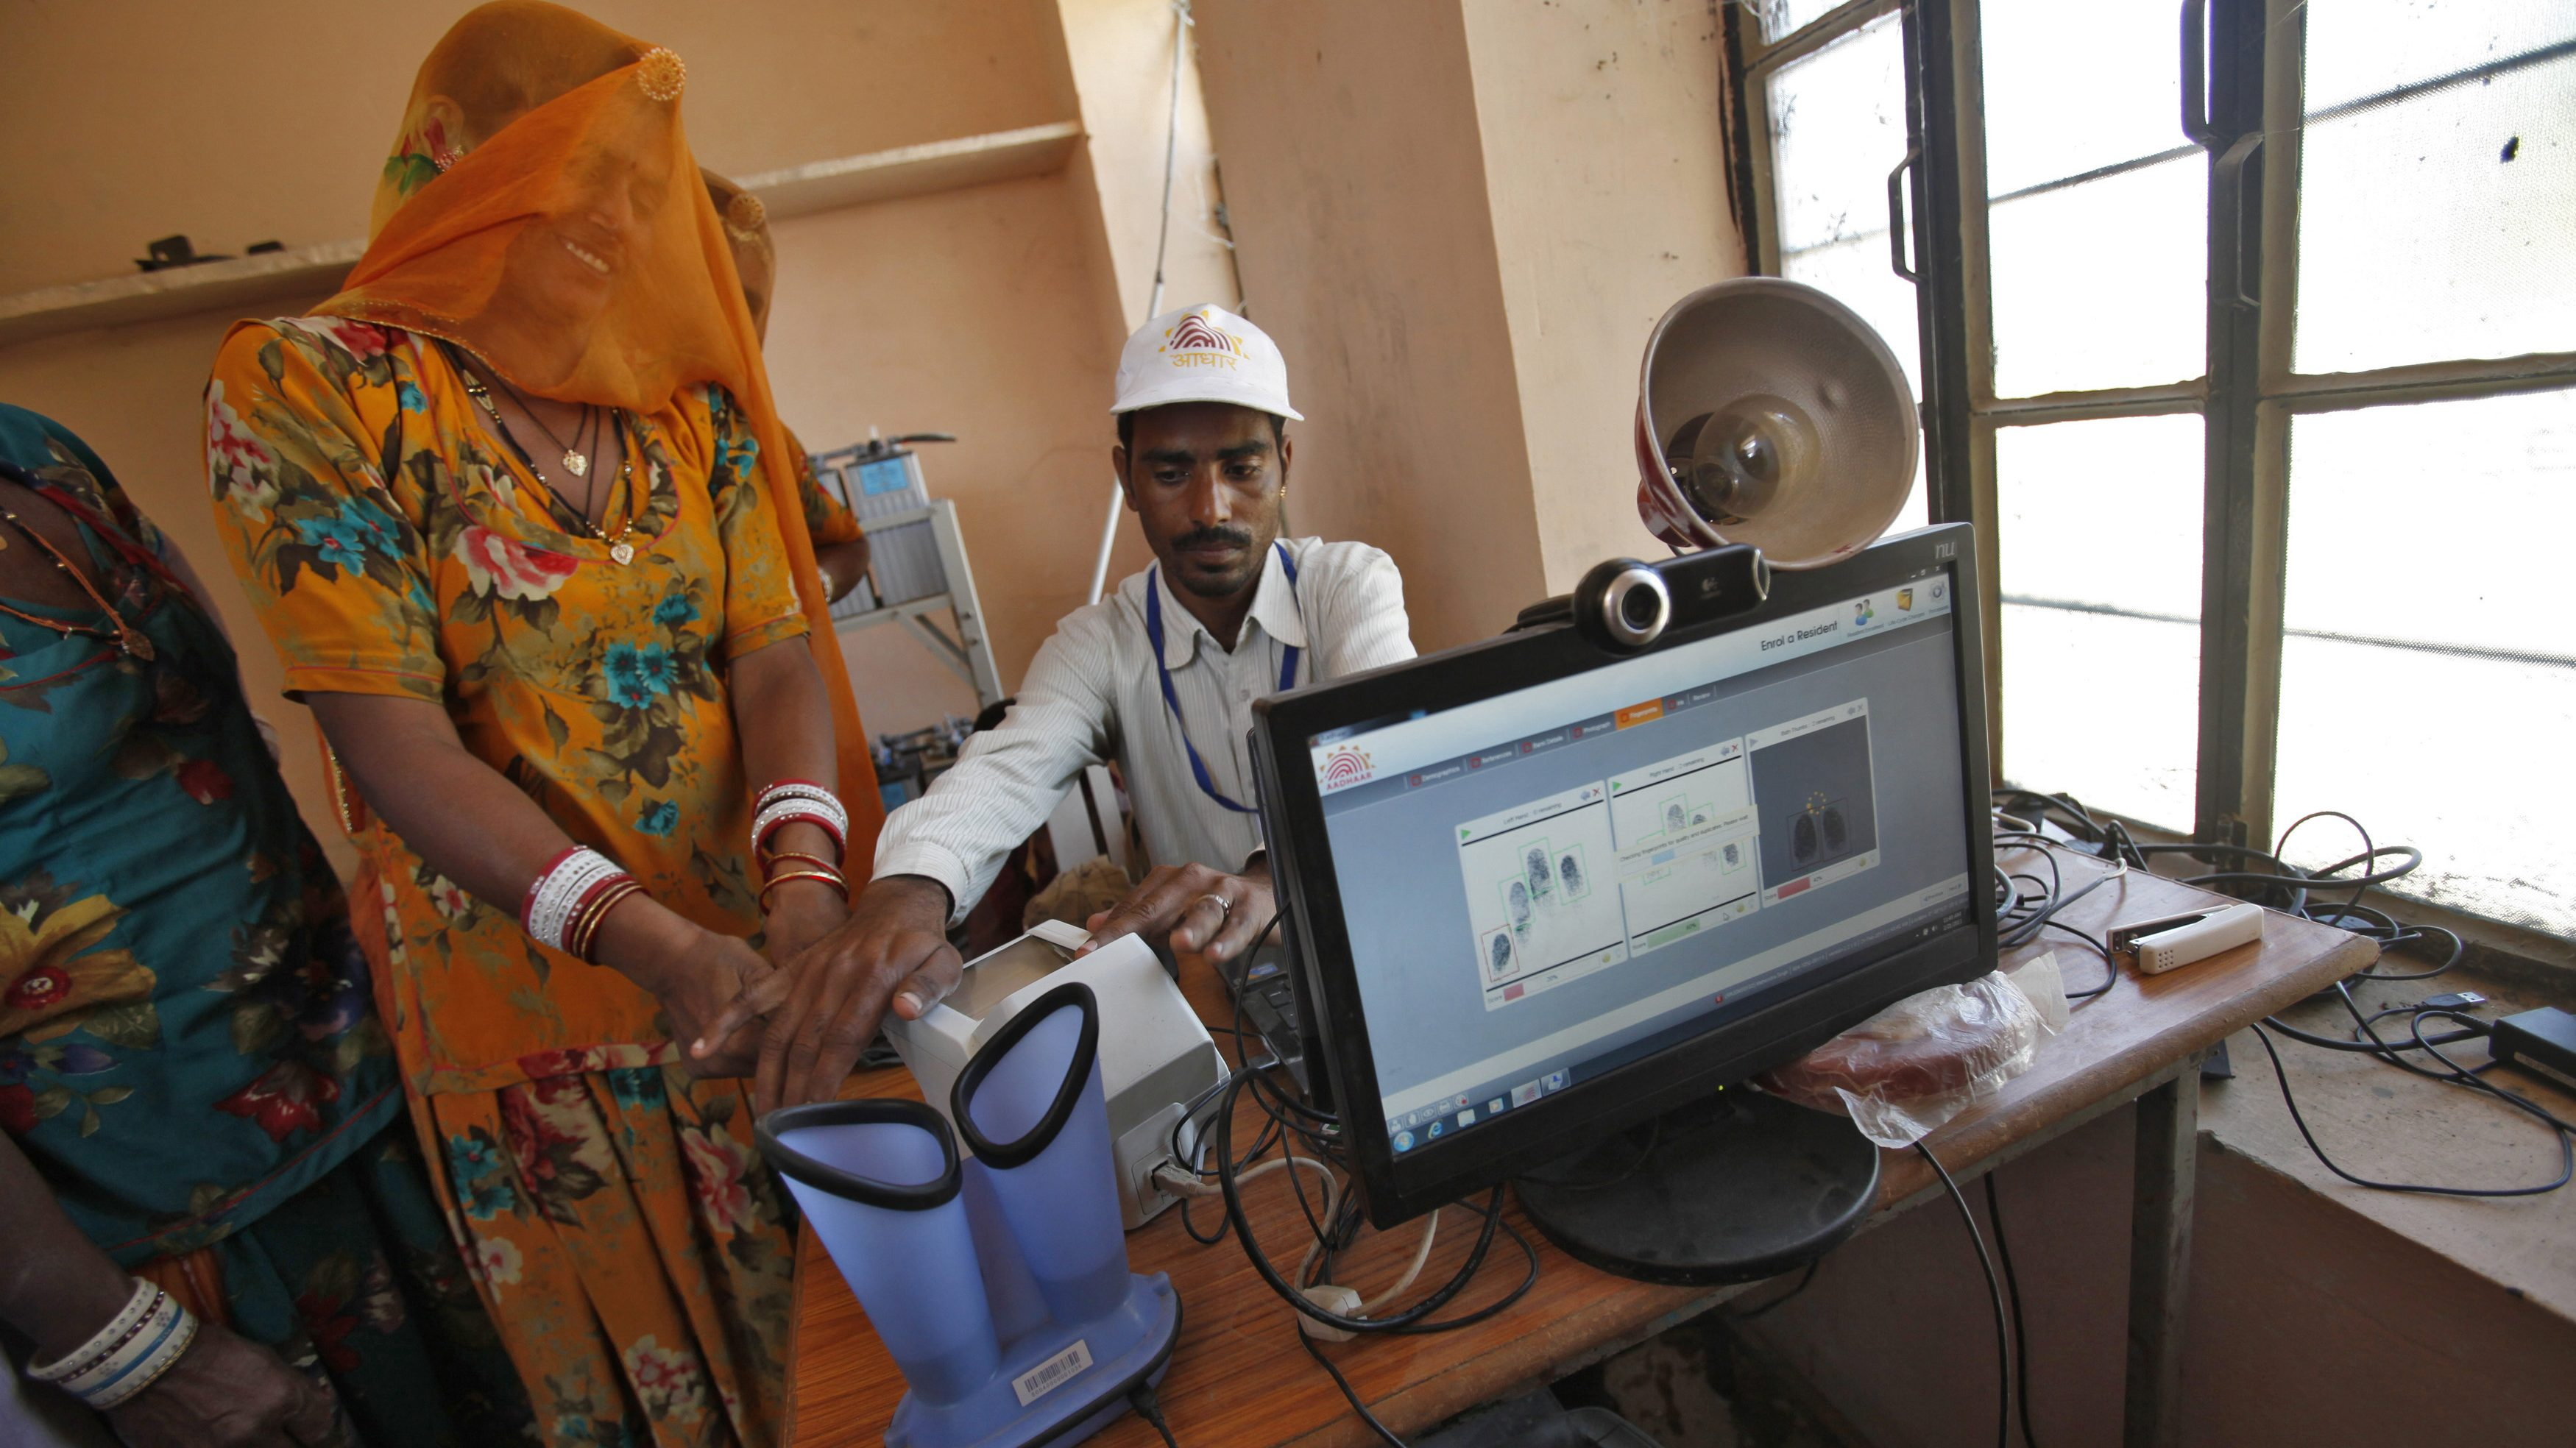 India scores poorly on safety of Aadhaar biometric data